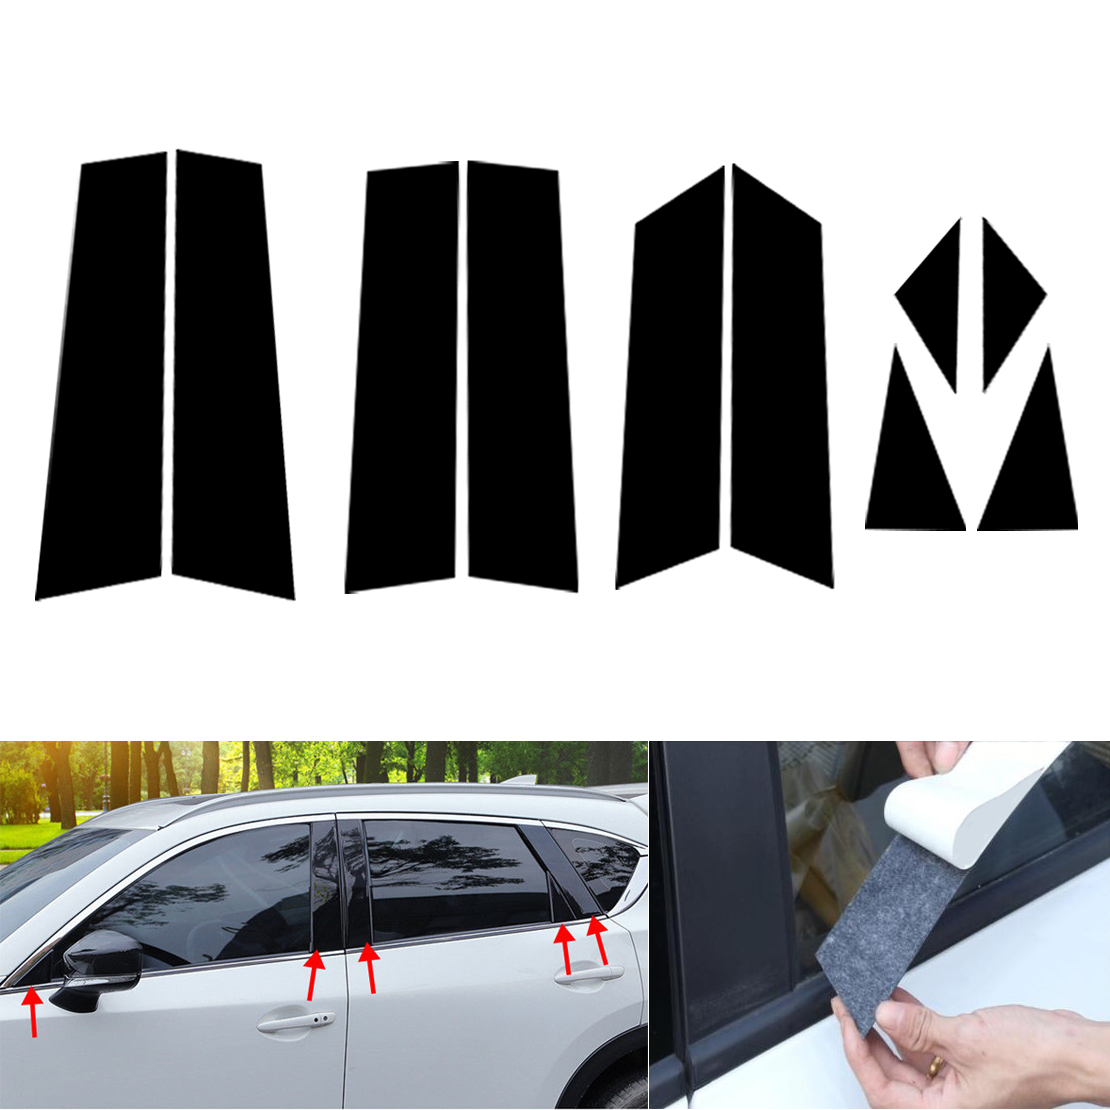 DWCX 10pcs Black Car Door Window Pillar Posts Piano Trim Cover Kit Fit For Mazda CX-5 CX5 2017 2018